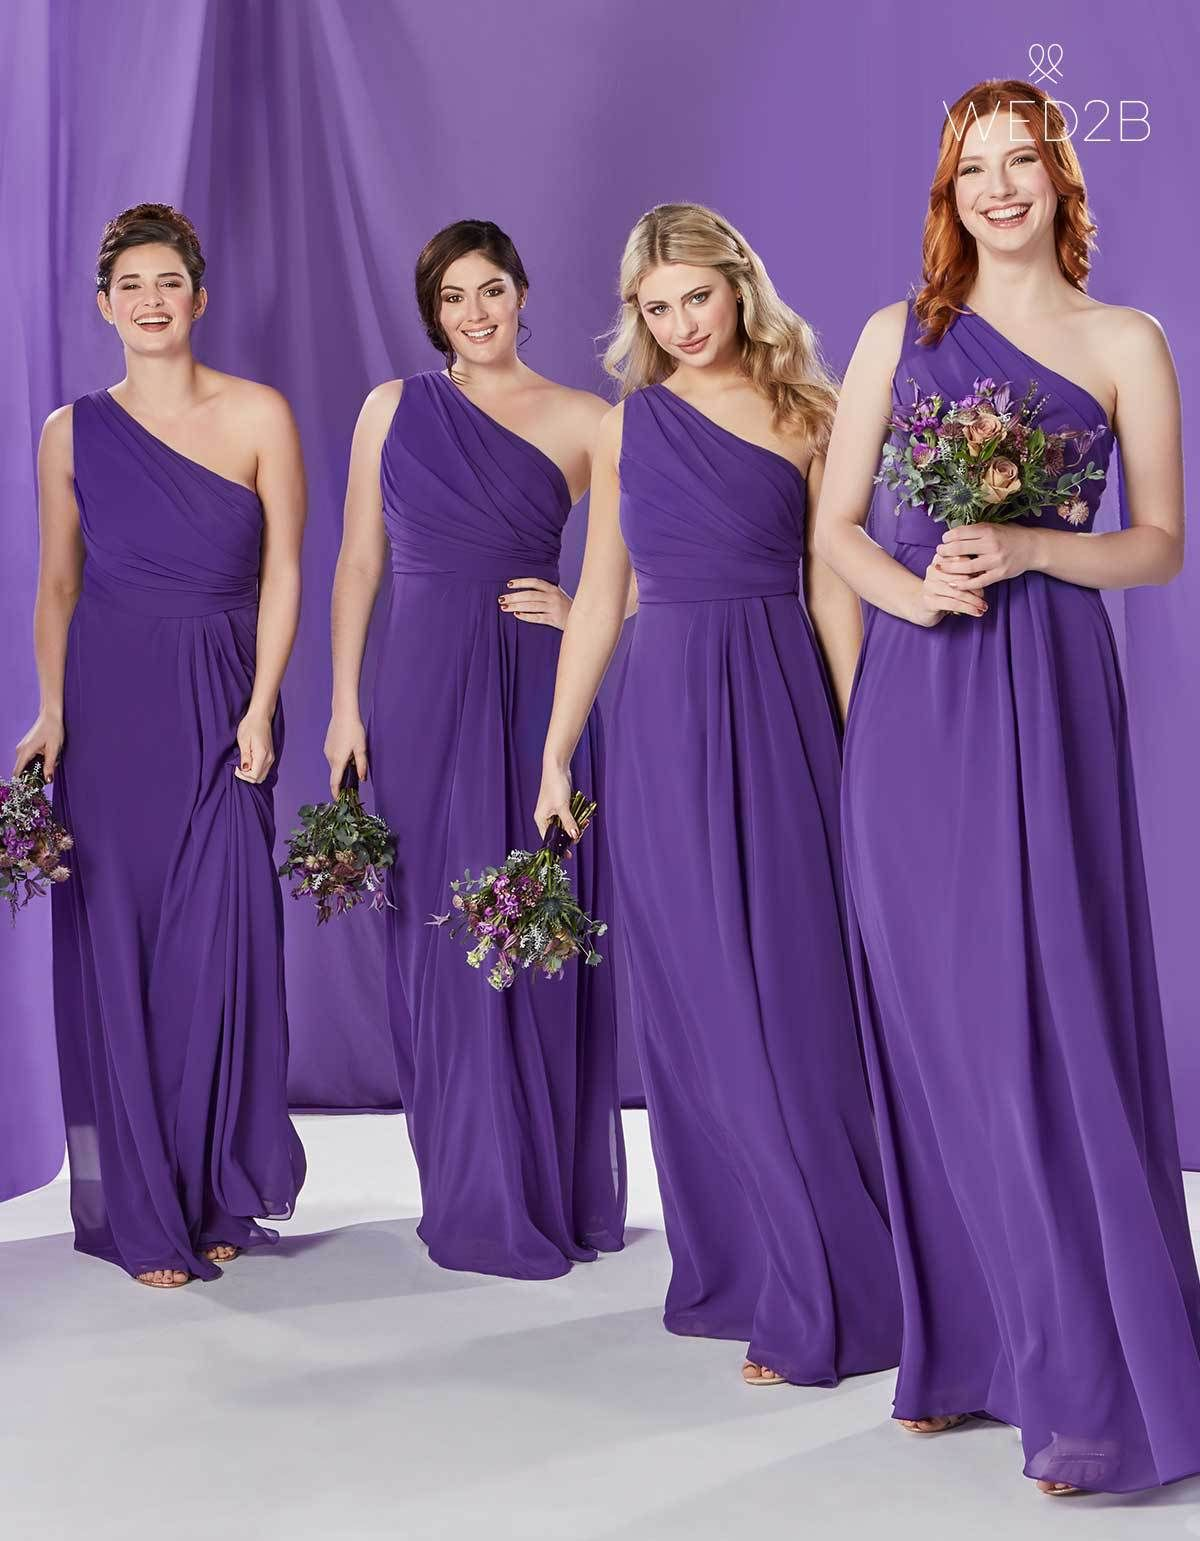 How To Choose Your Bridesmaids Dresses Wed2b